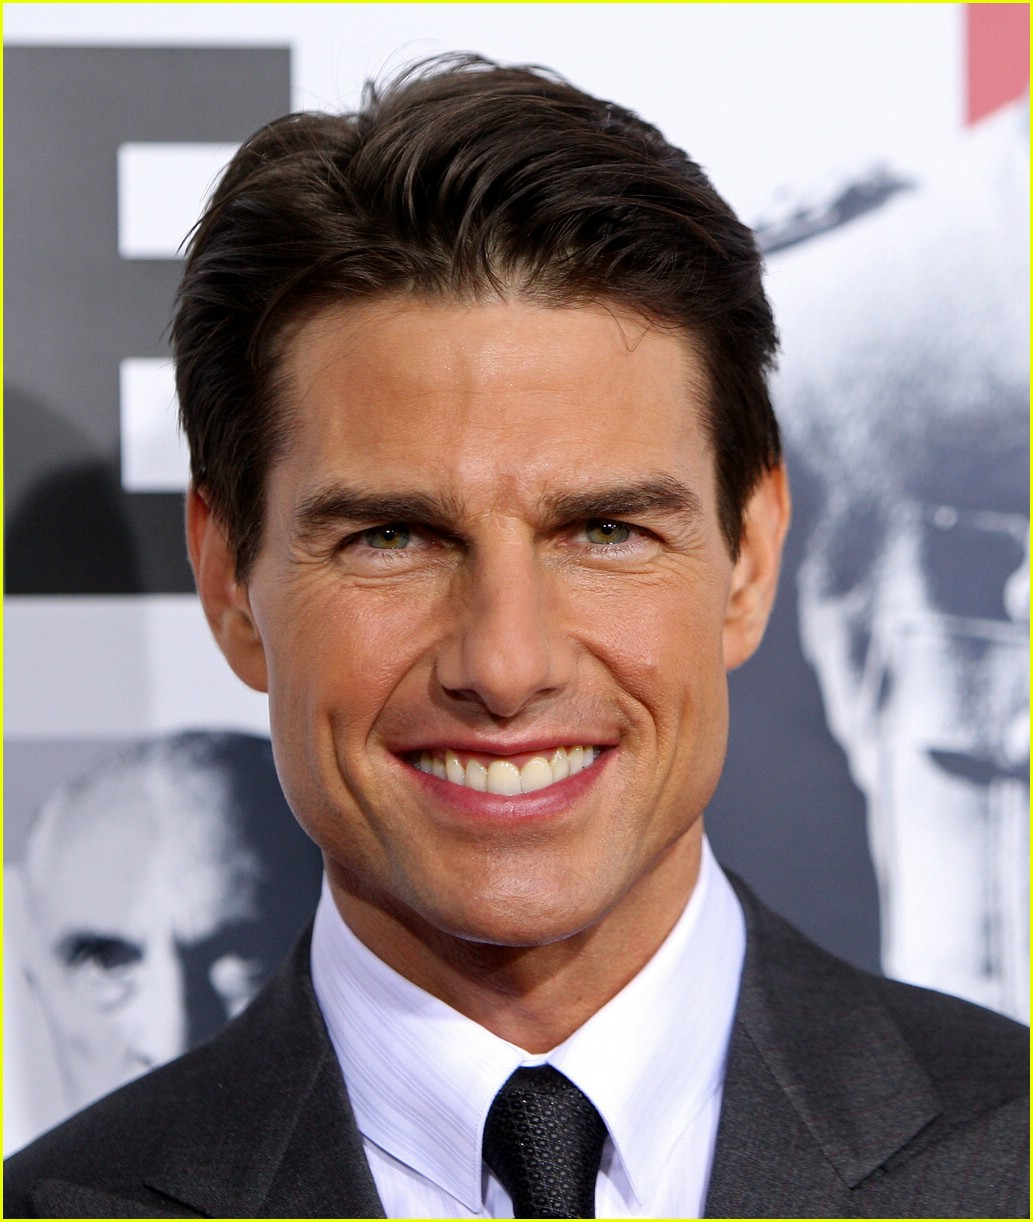 Hairstyles For Men Tom Cruise Hair The Sleek Appearance